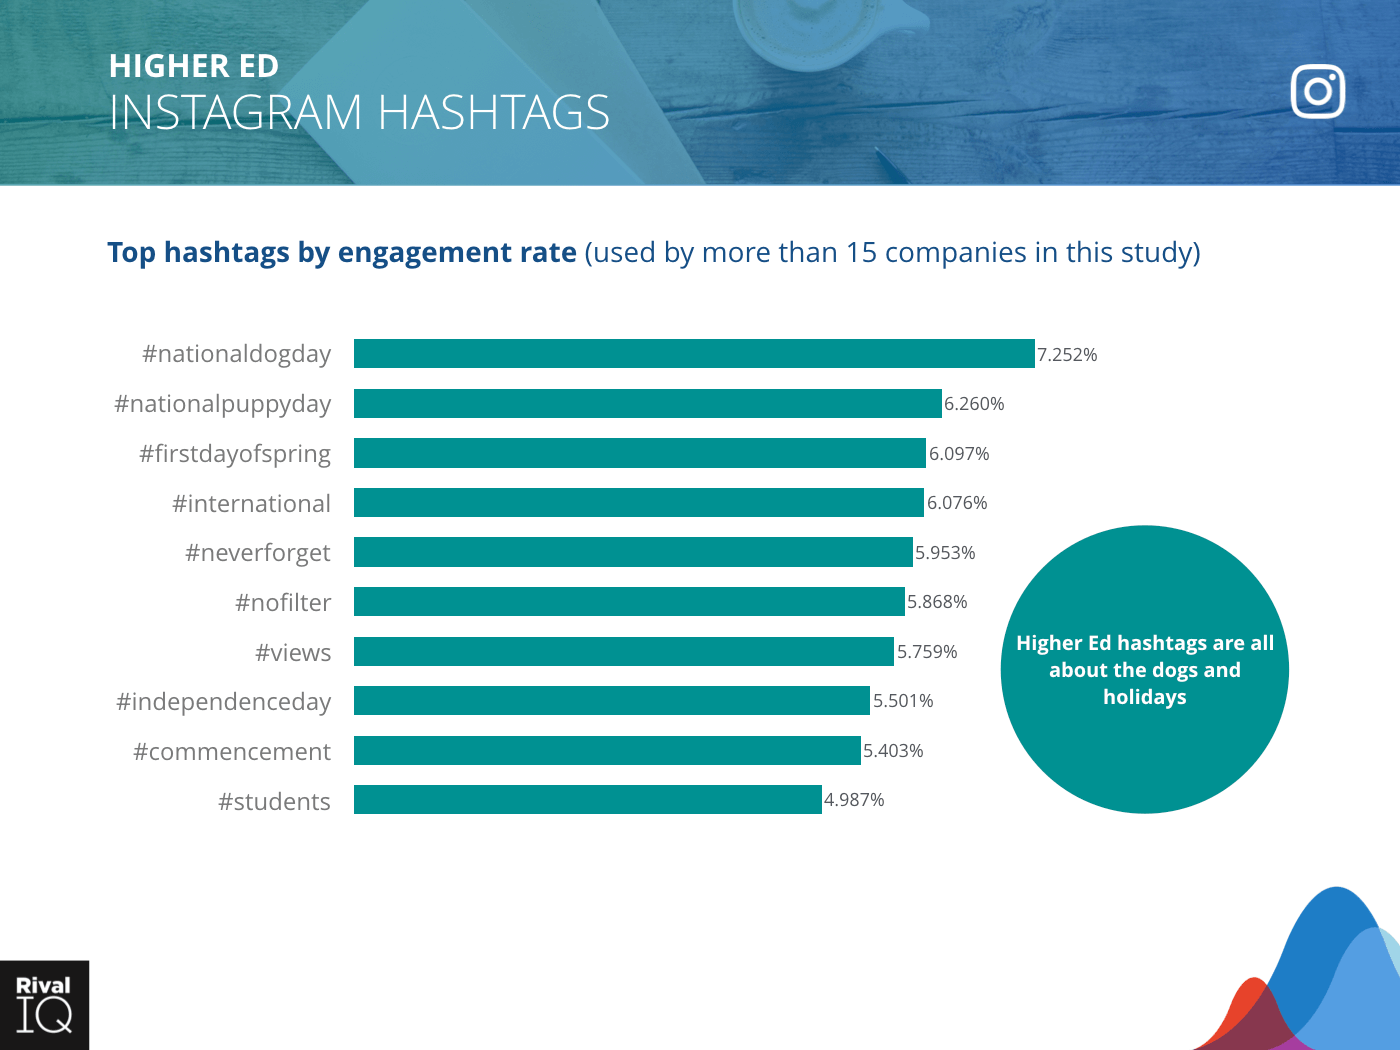 Higher Ed Industry: bar graph, top hashtags by engagement rate on Instagram